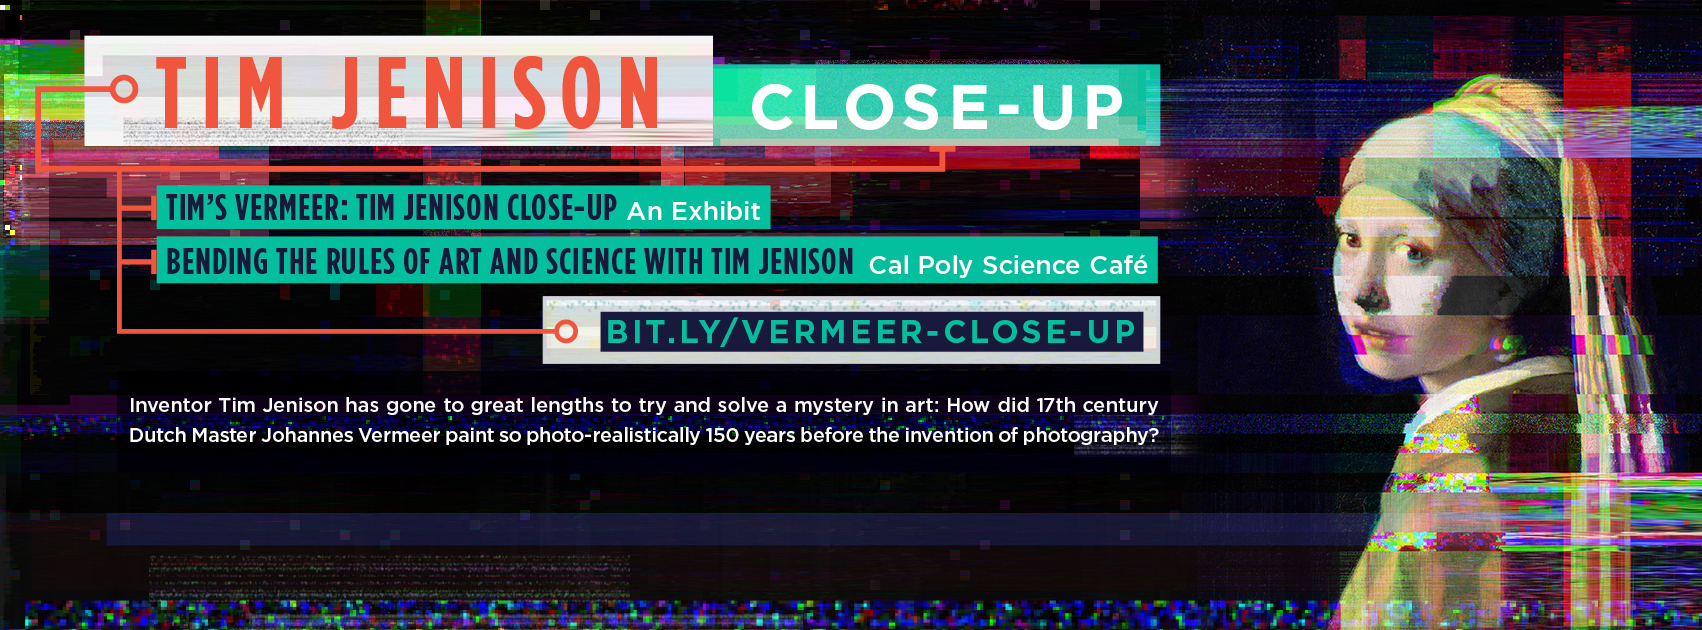 Tim Jenison: Close-Up Exhibit and Science Café at Robert E. Kennedy Library